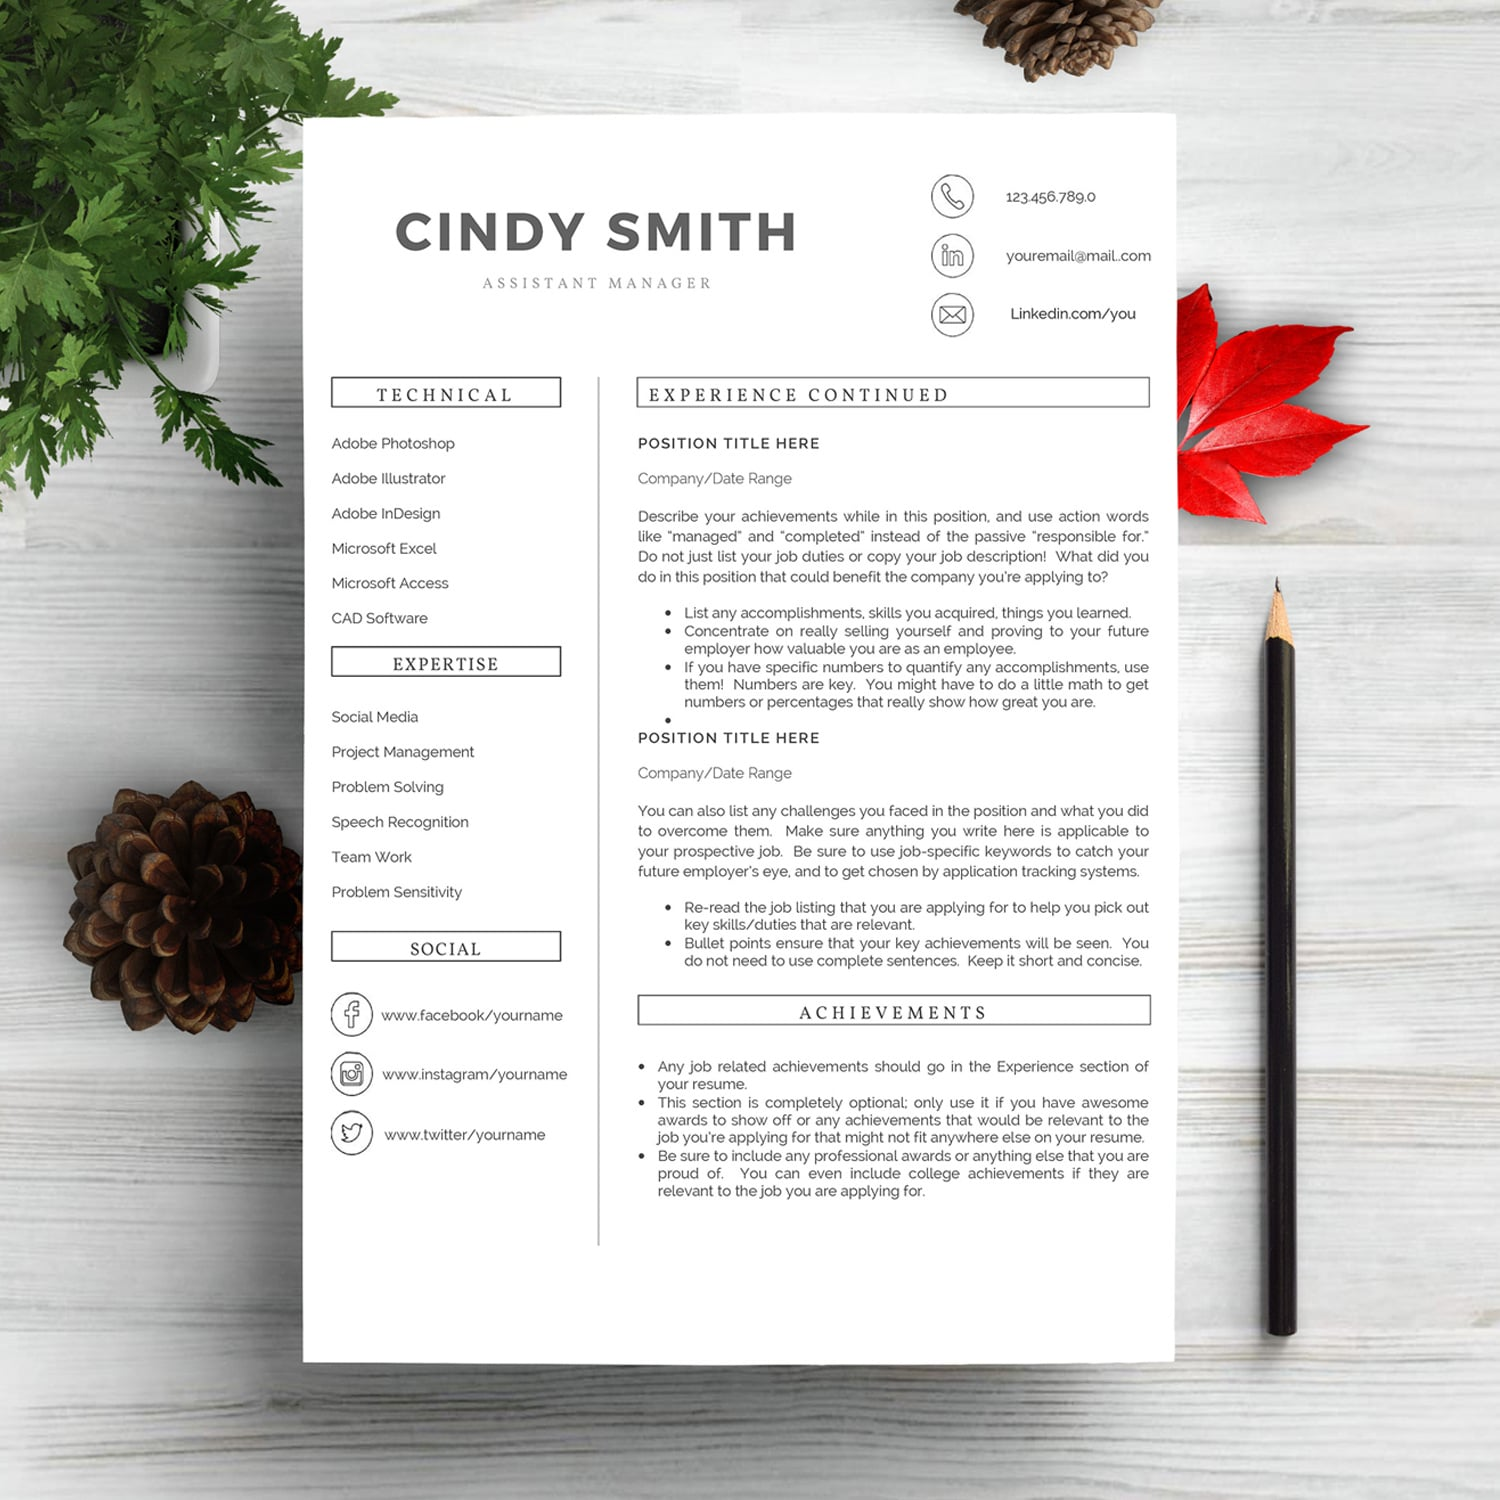 Professional Resume Template 2020. Clean Resume Template – Only $9! - page 2 3